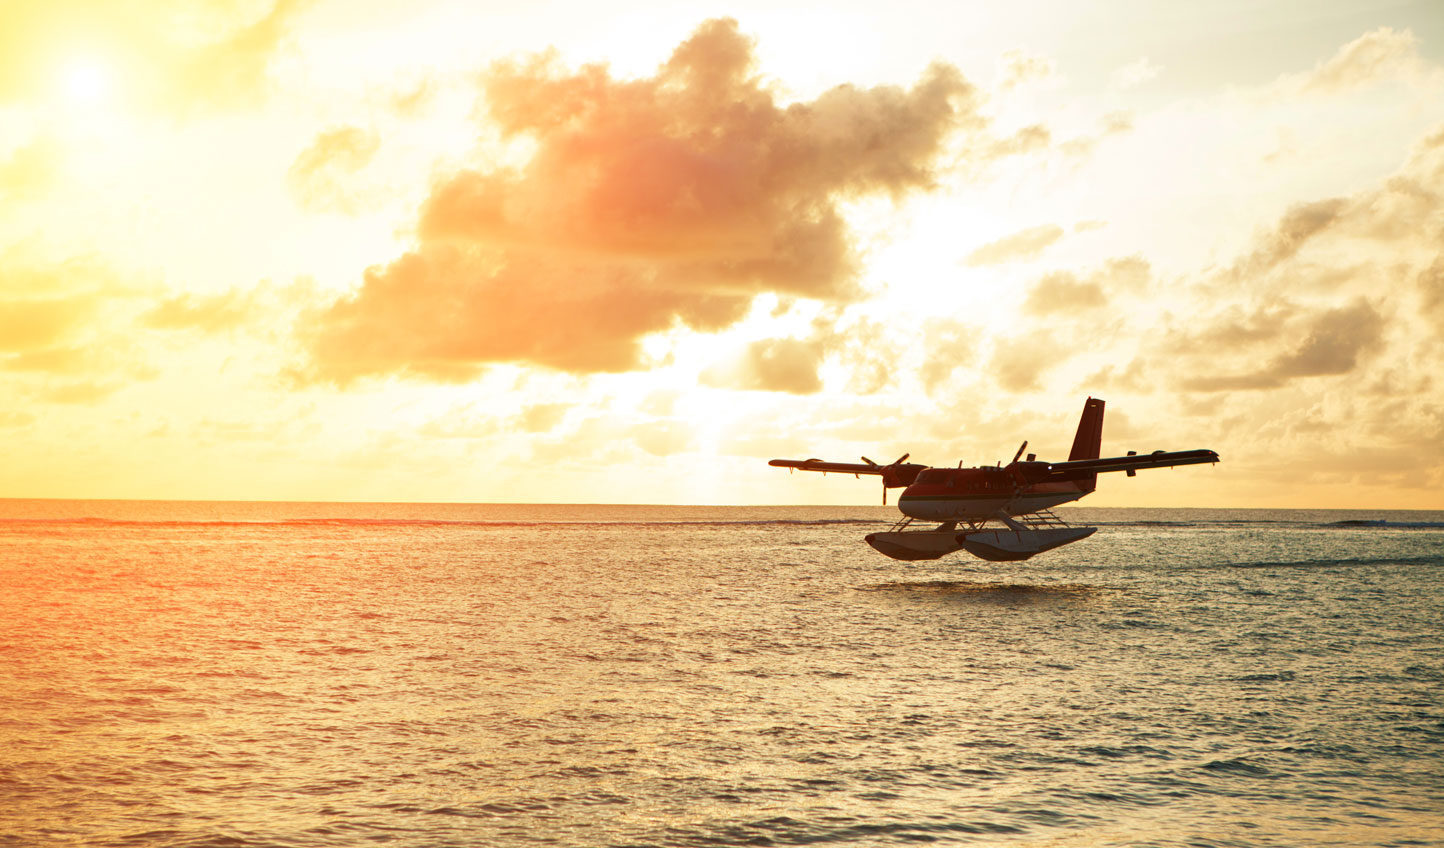 A seaplane soars above the water